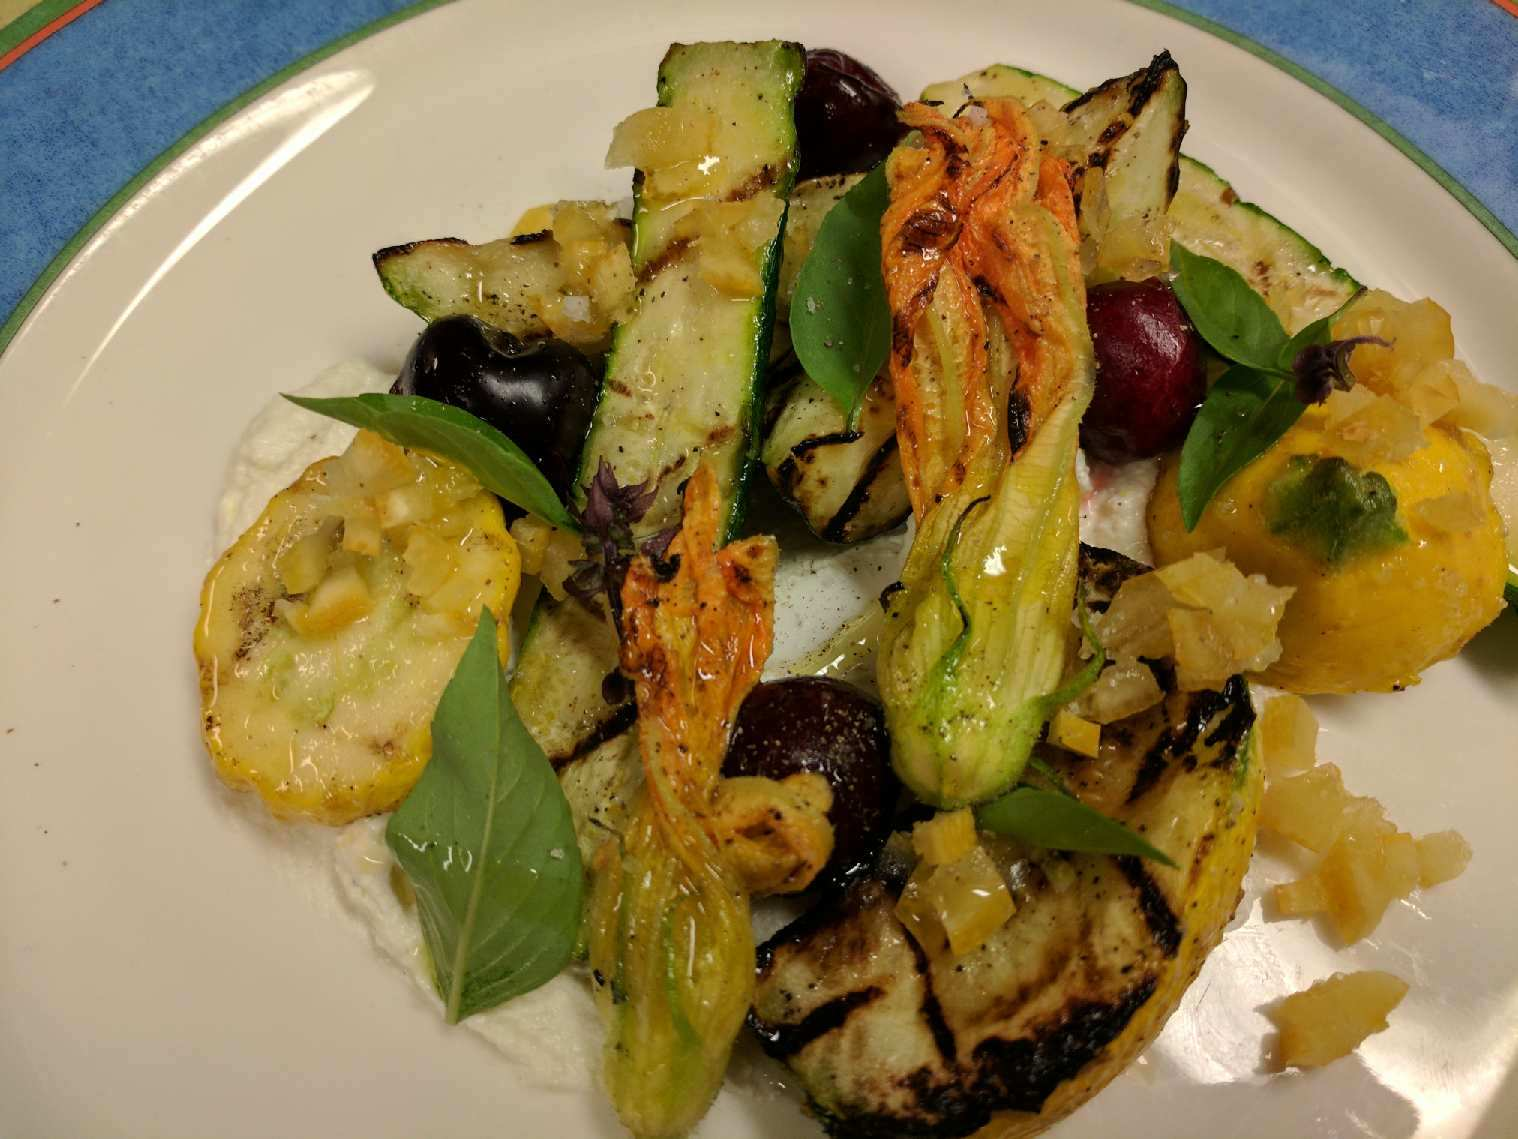 Chef Crochet's grilled zucchini, ricotta and pickled cherry salad! A summer delight!